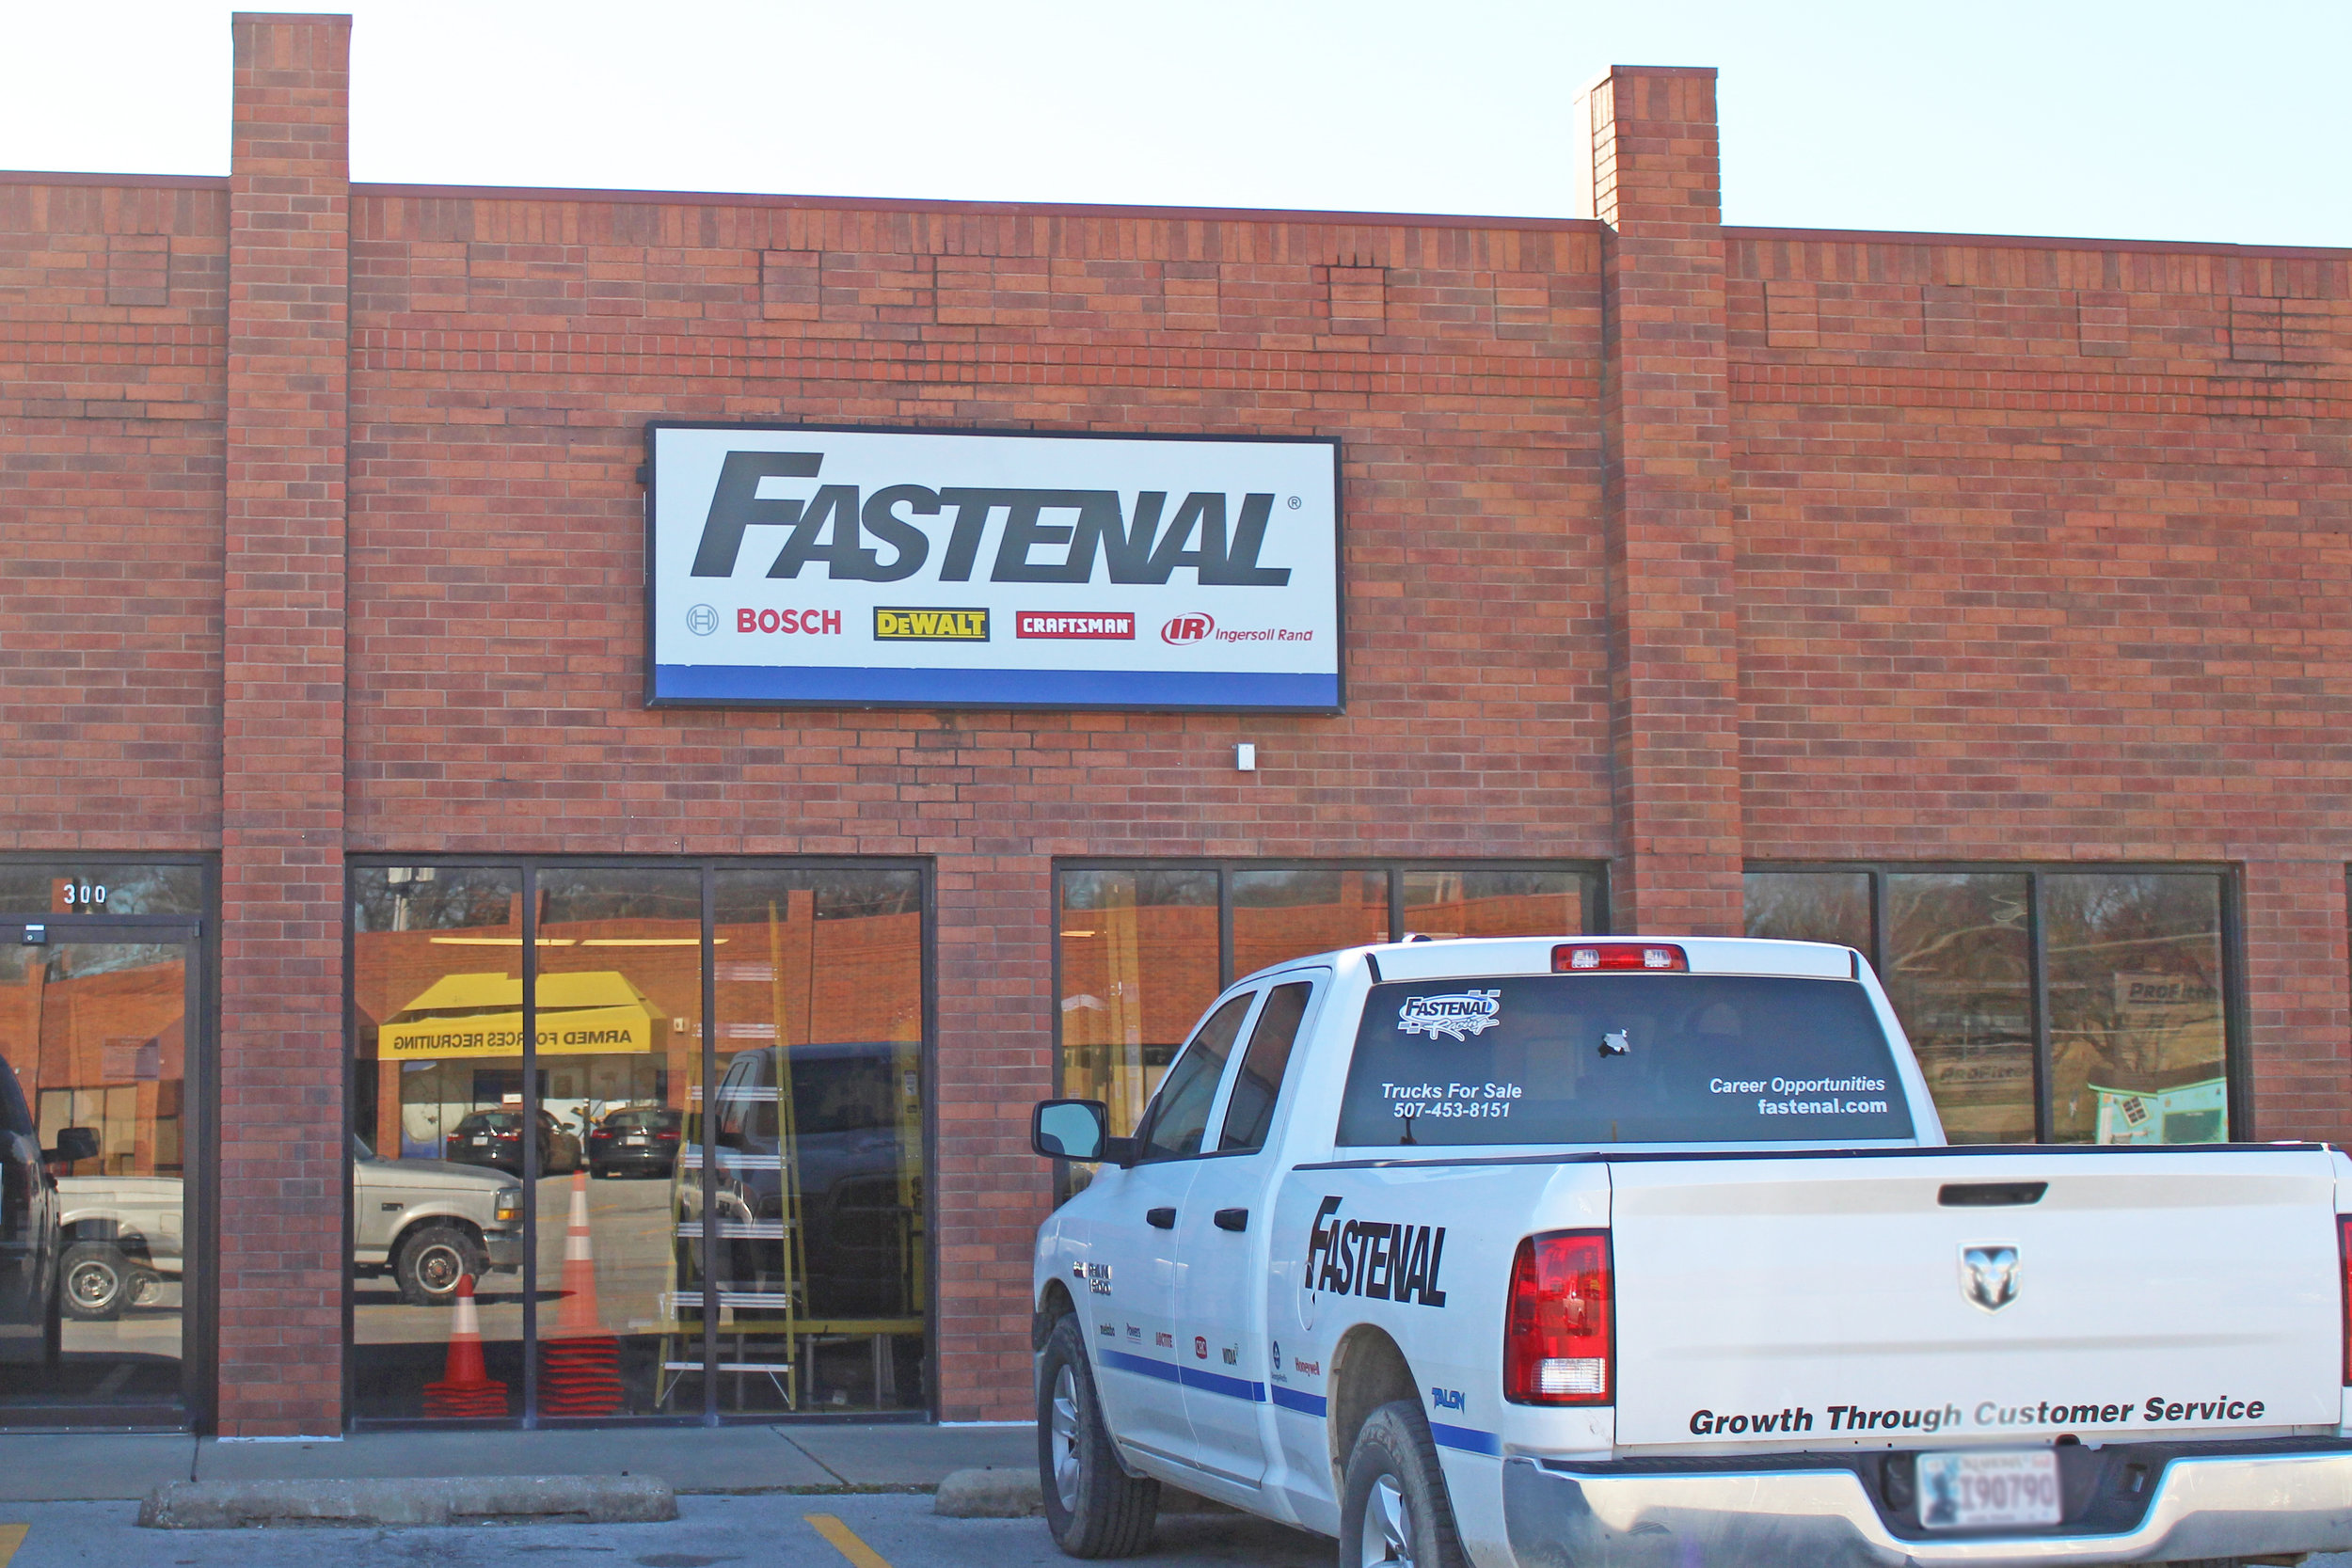 fastenal 1126 east charles page boulevard, suite 300